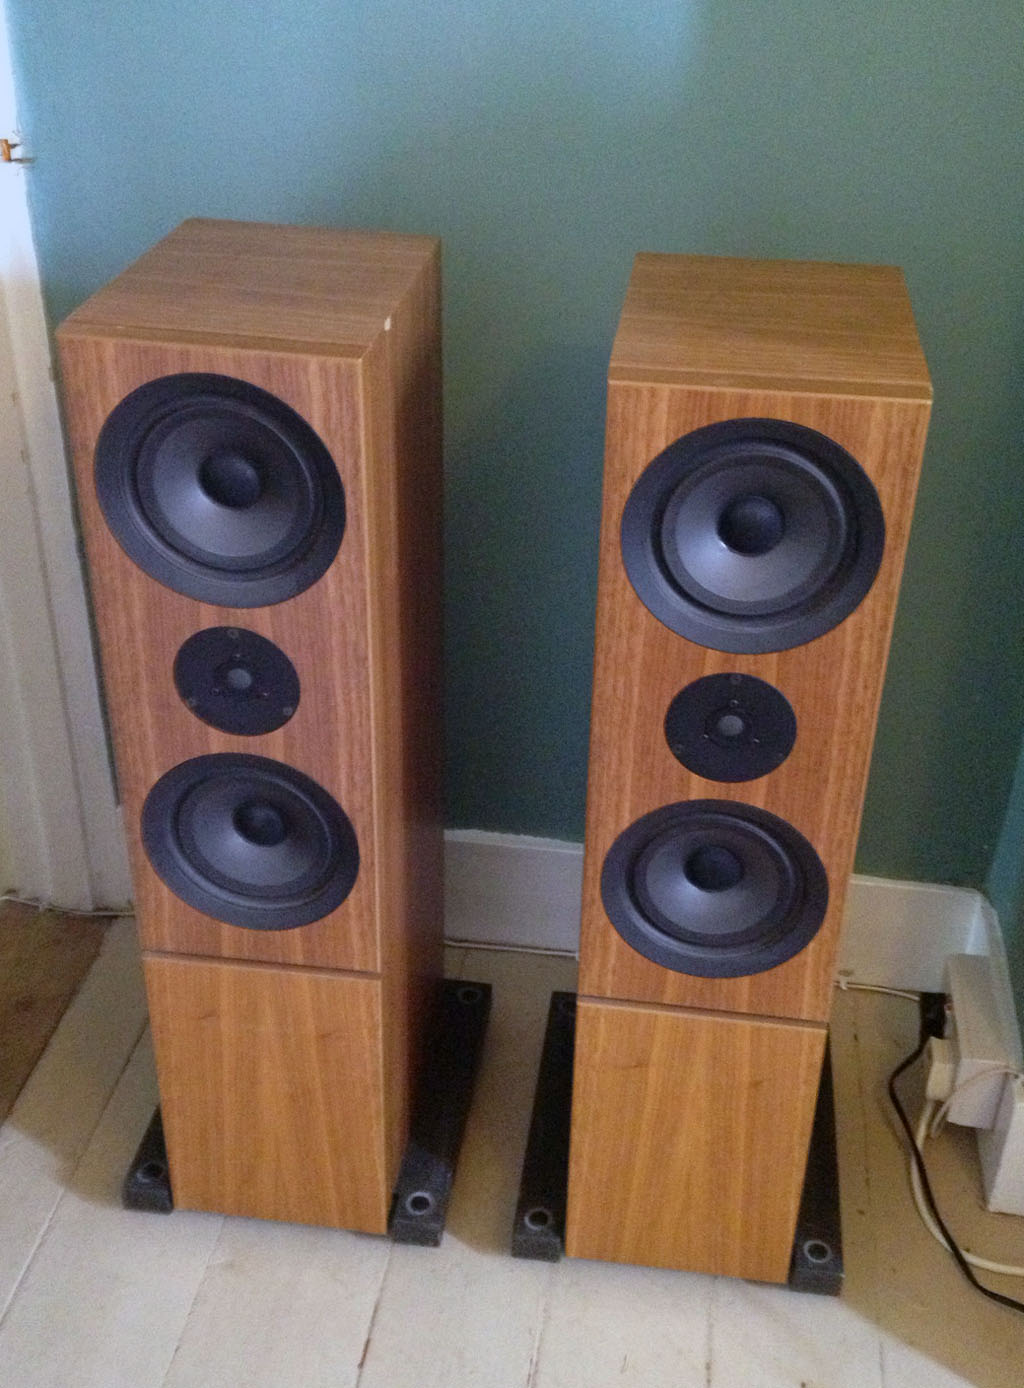 Linn Keilidhs Compact Tower Speakers Hi Fi Systems Reviews Subwoofer Additionally 4 Dual 2 Ohm Sub Wiring On Subwoofers